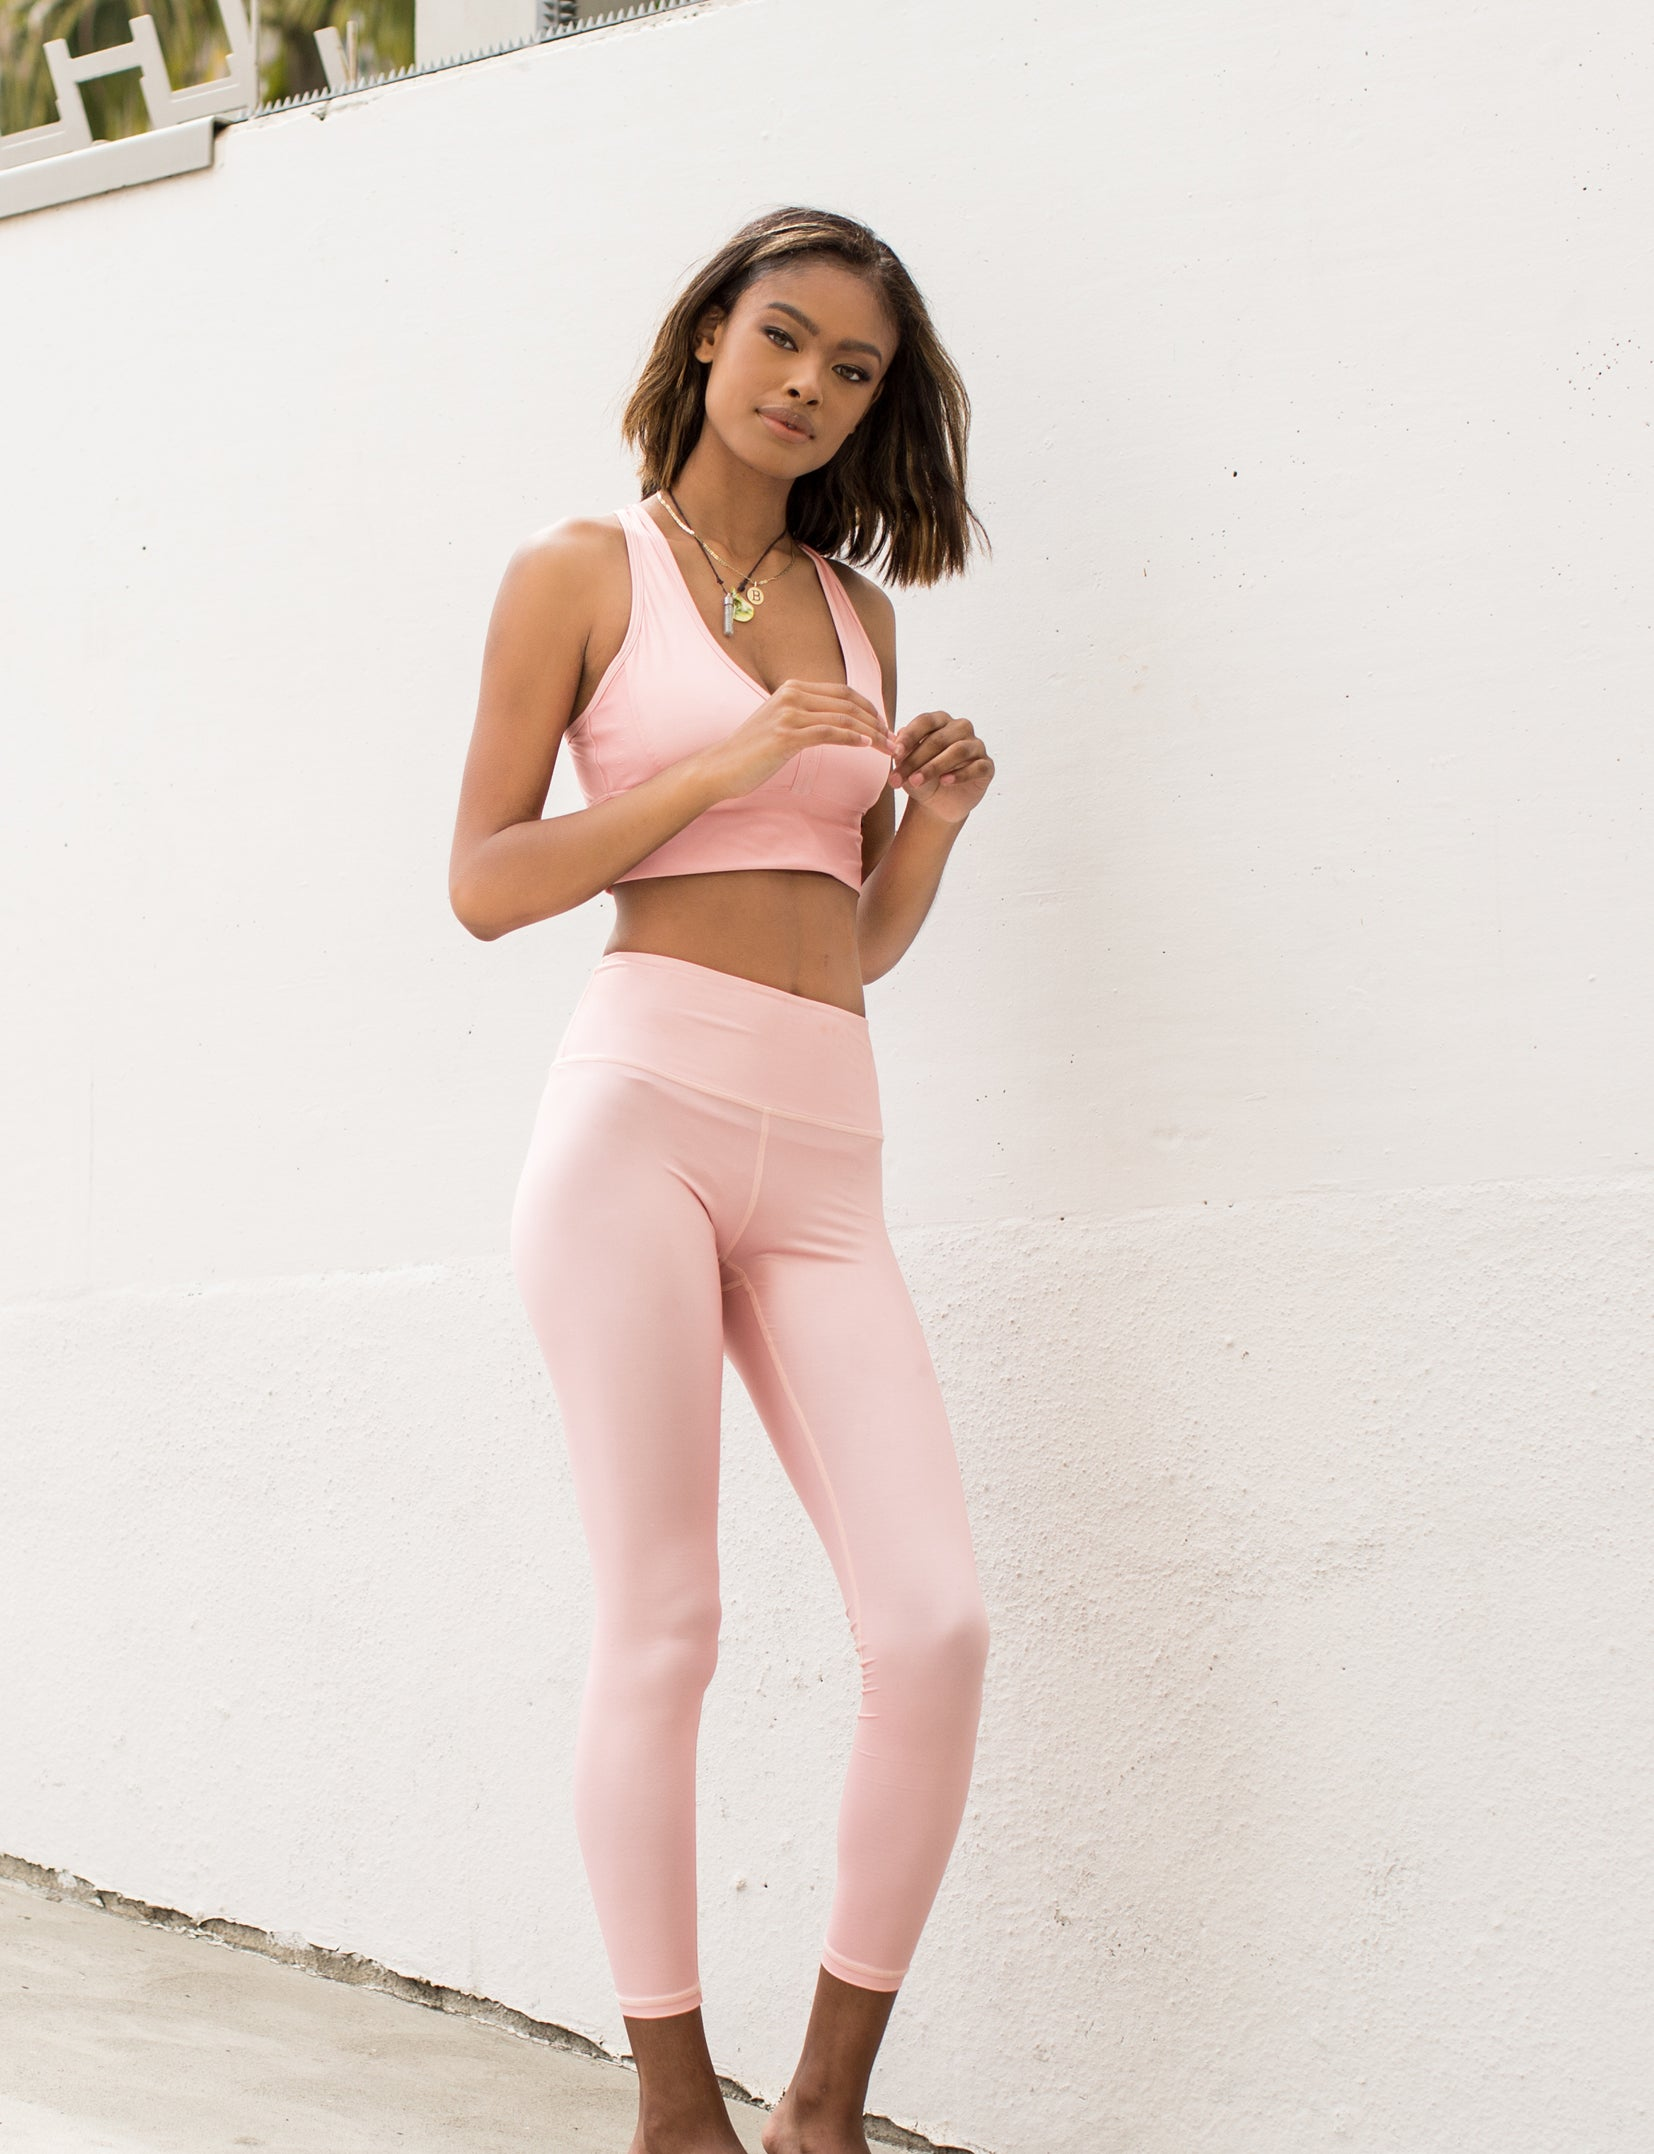 Activewear womens, workout clothes, activewear, womens activewear pants, womens, yoga, active wear, activewear, athletics leggings, women's activewear, womens workout clothes, gym outfits for women, nubyen activewear, nubyen second skin, nubyen Topshop, topshop activewear, asos, asos activewear, nubyen asos, ,  revolve activewear, iconic activewear, best selling revove activewear, nubyen revolveymshark, fabletics, under armour, varley , nike ,alphalete, aybl, my protein, onzie